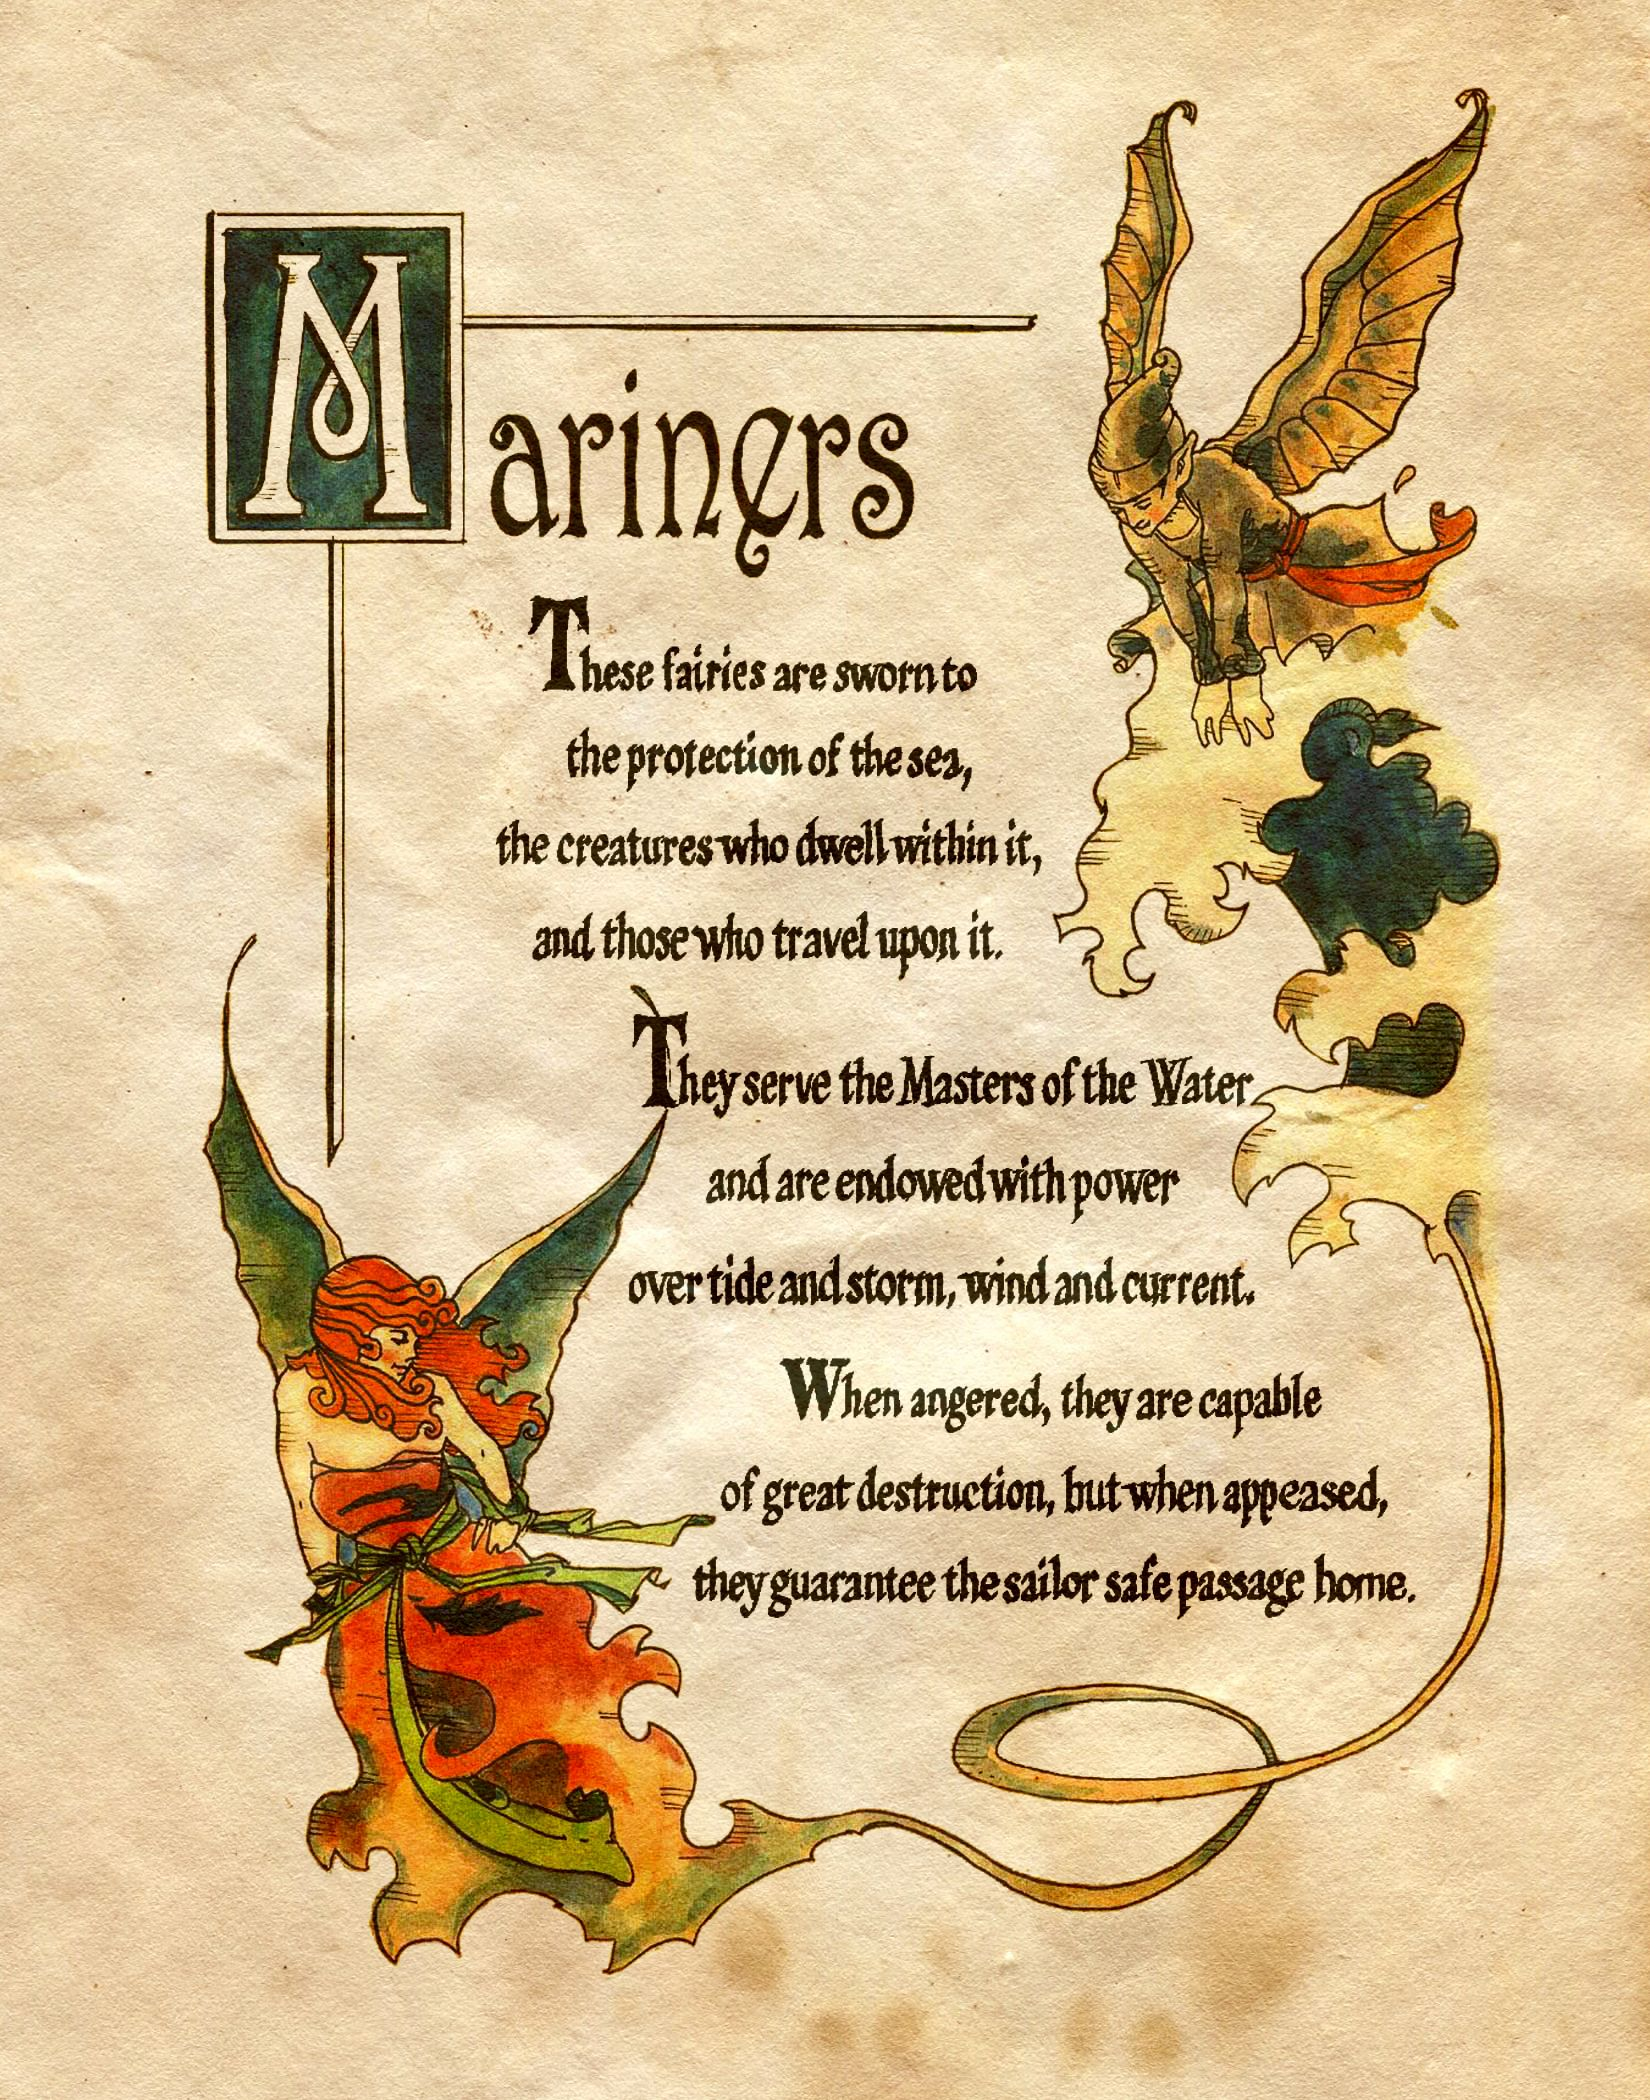 Mariners charmed book of shadows the power of